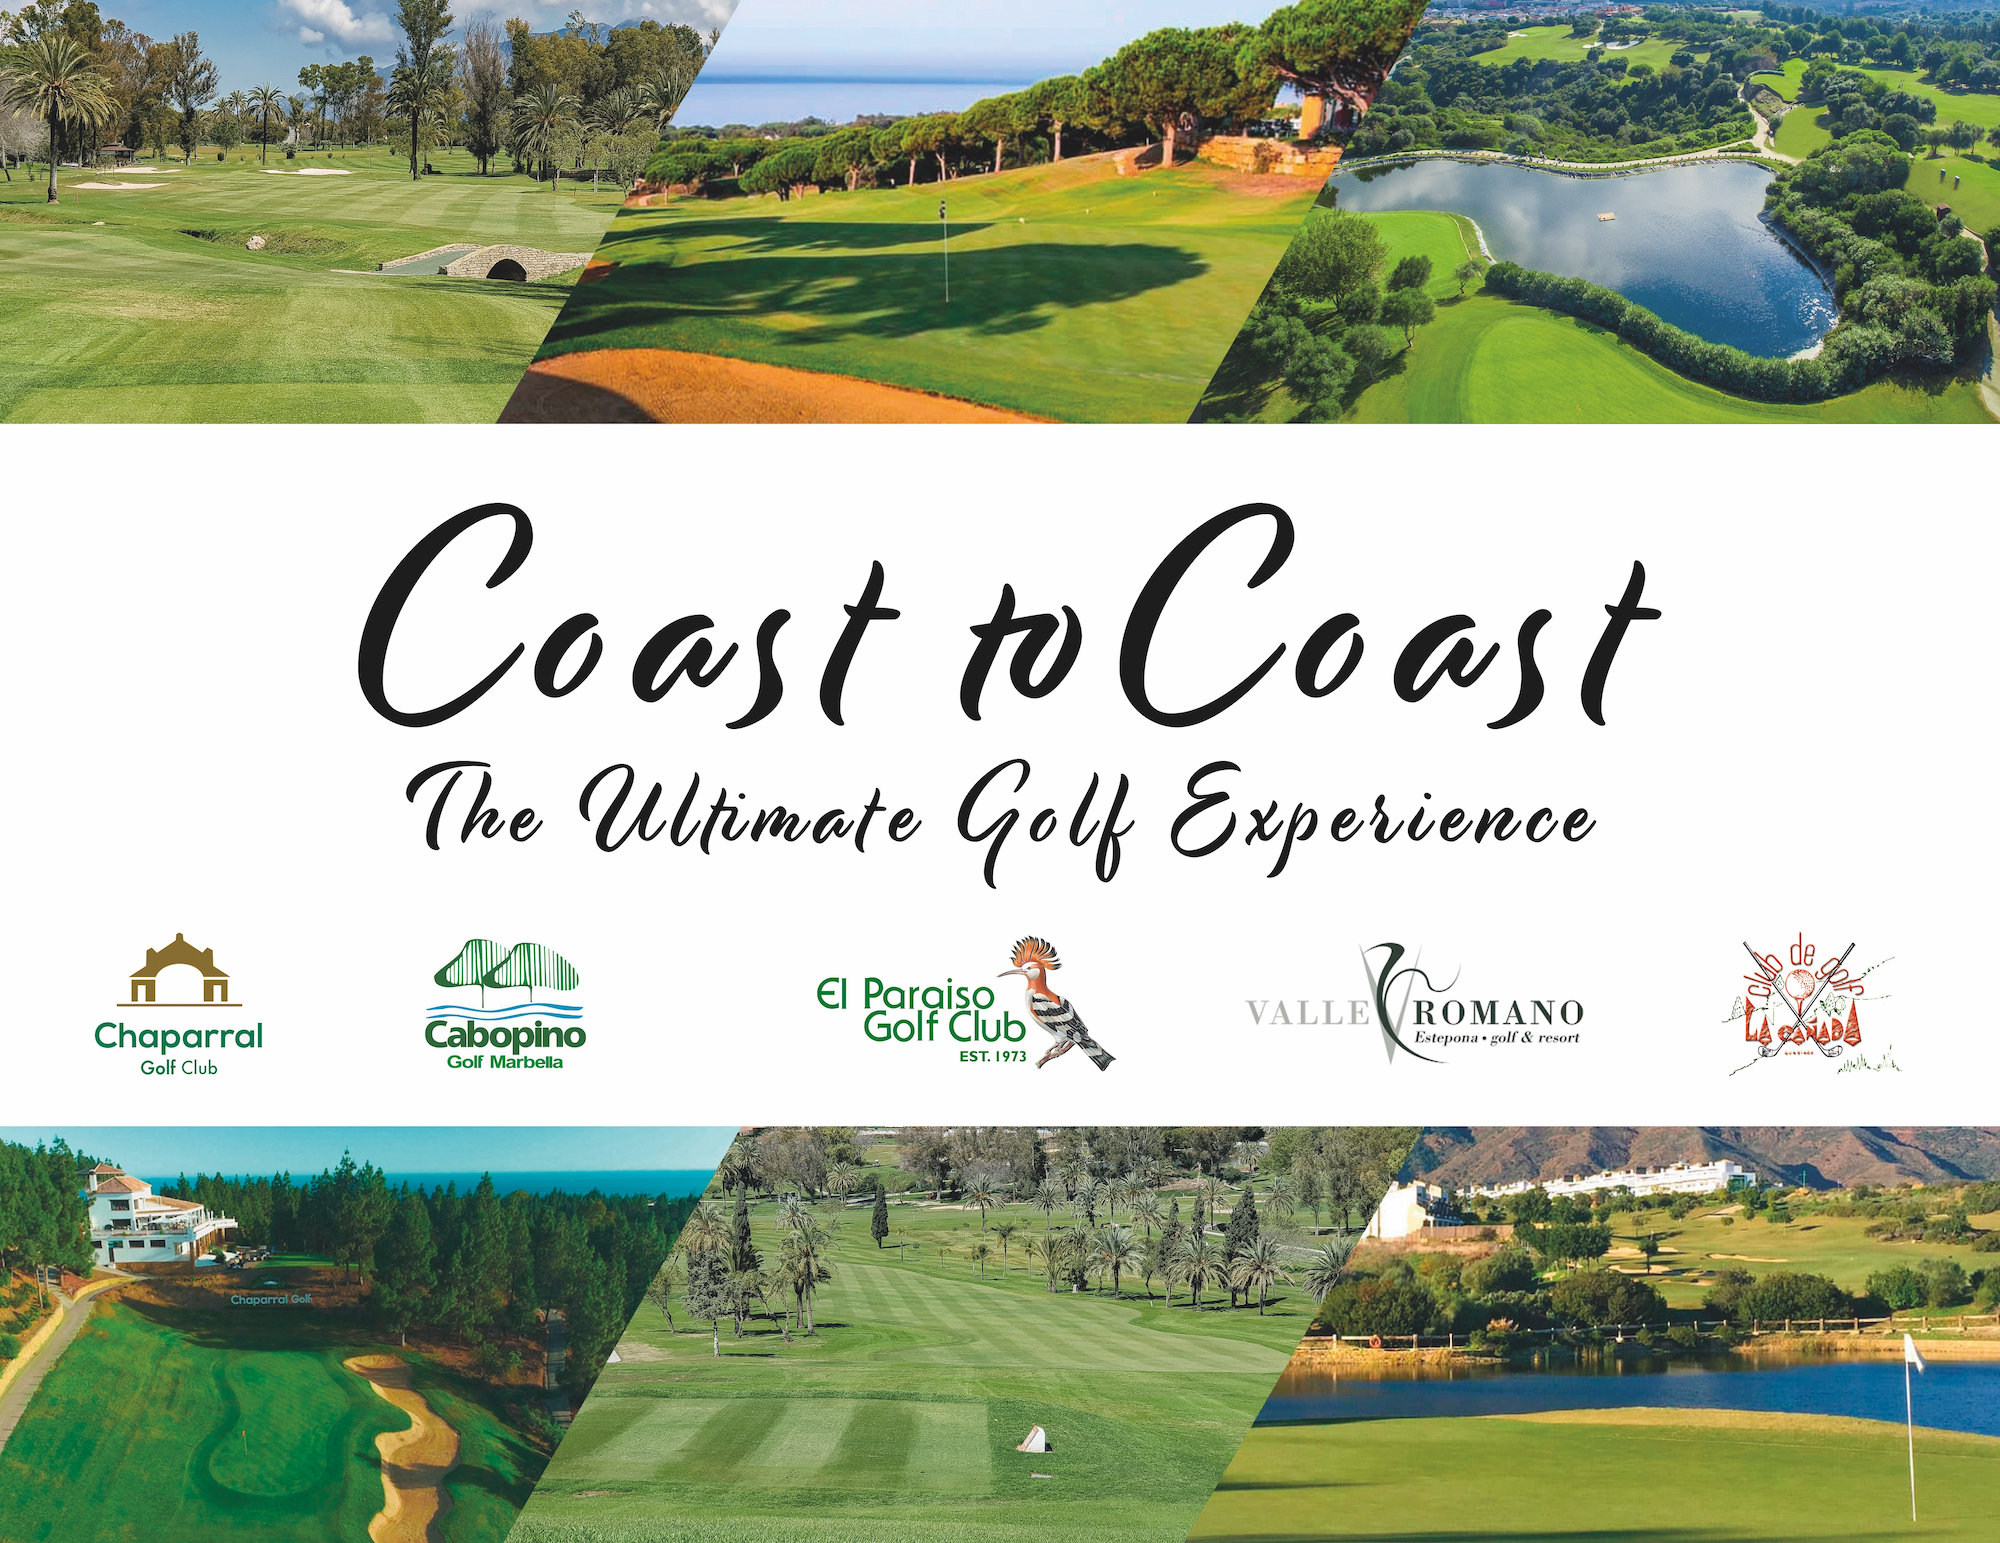 LOGO COAST TO COAST GOLF EXPERIENCE CHAPARRAL